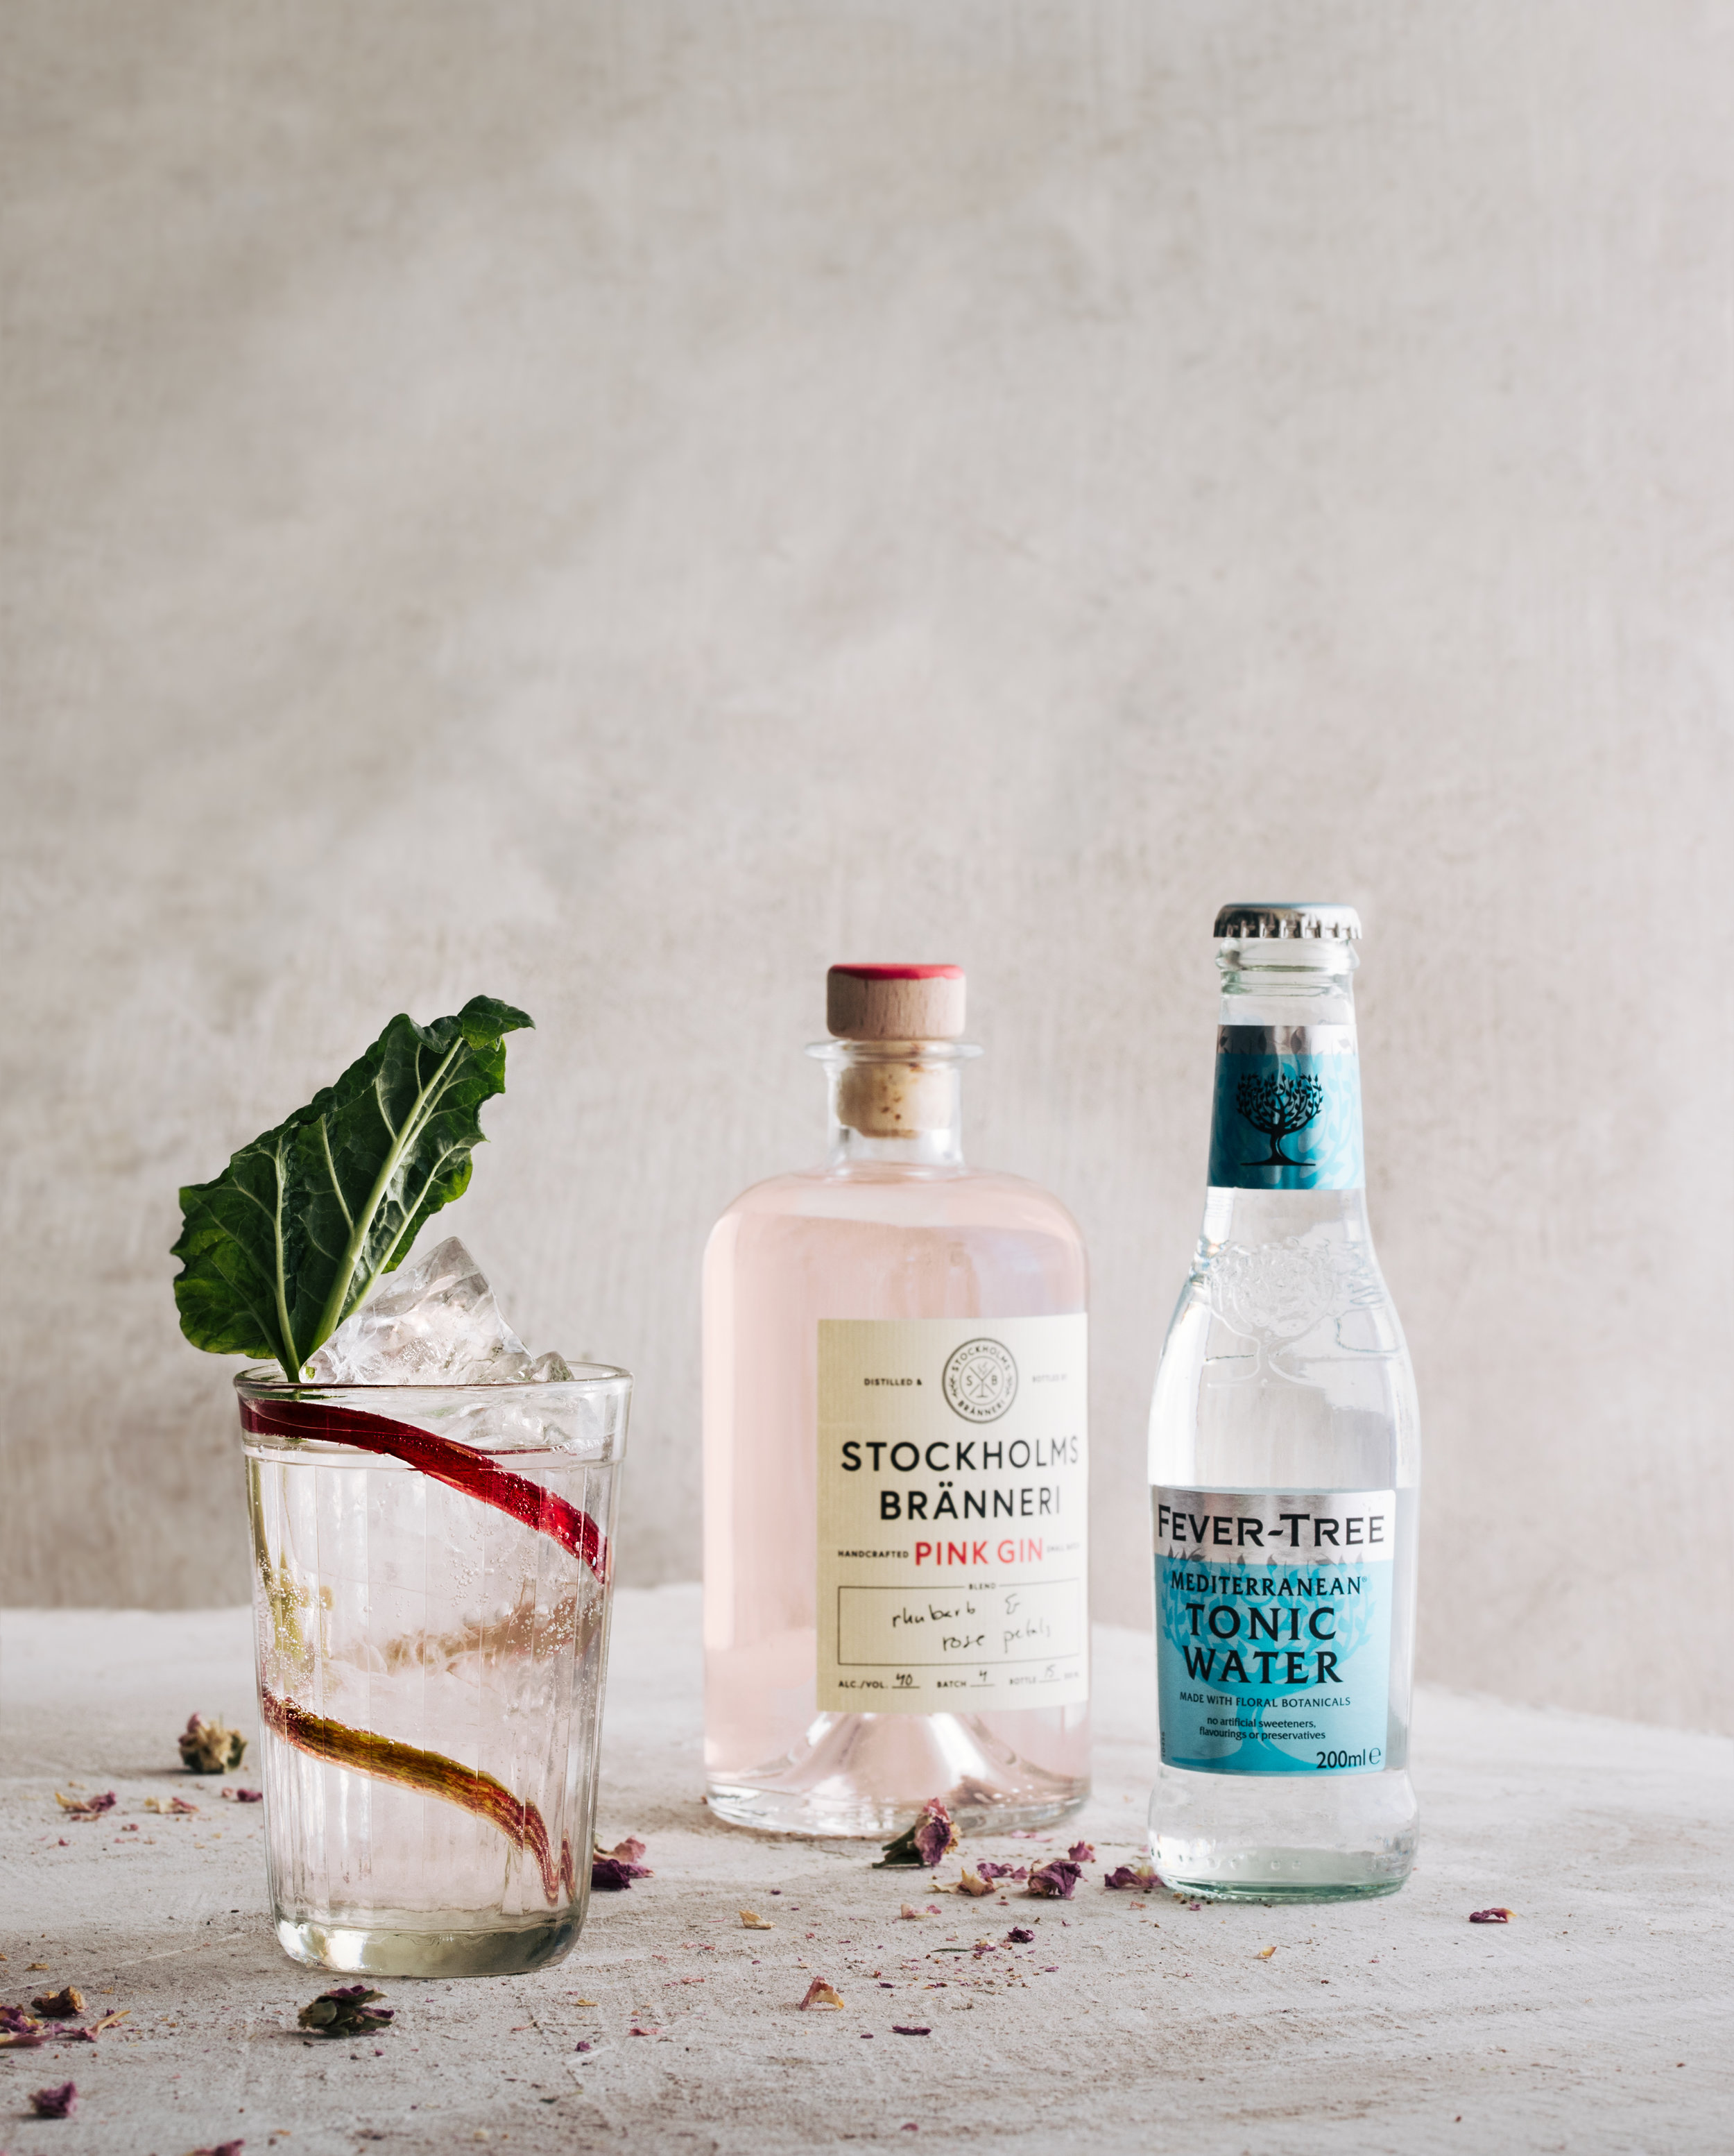 S|B Pink Gin & Tonic - For S|B Pink Gin